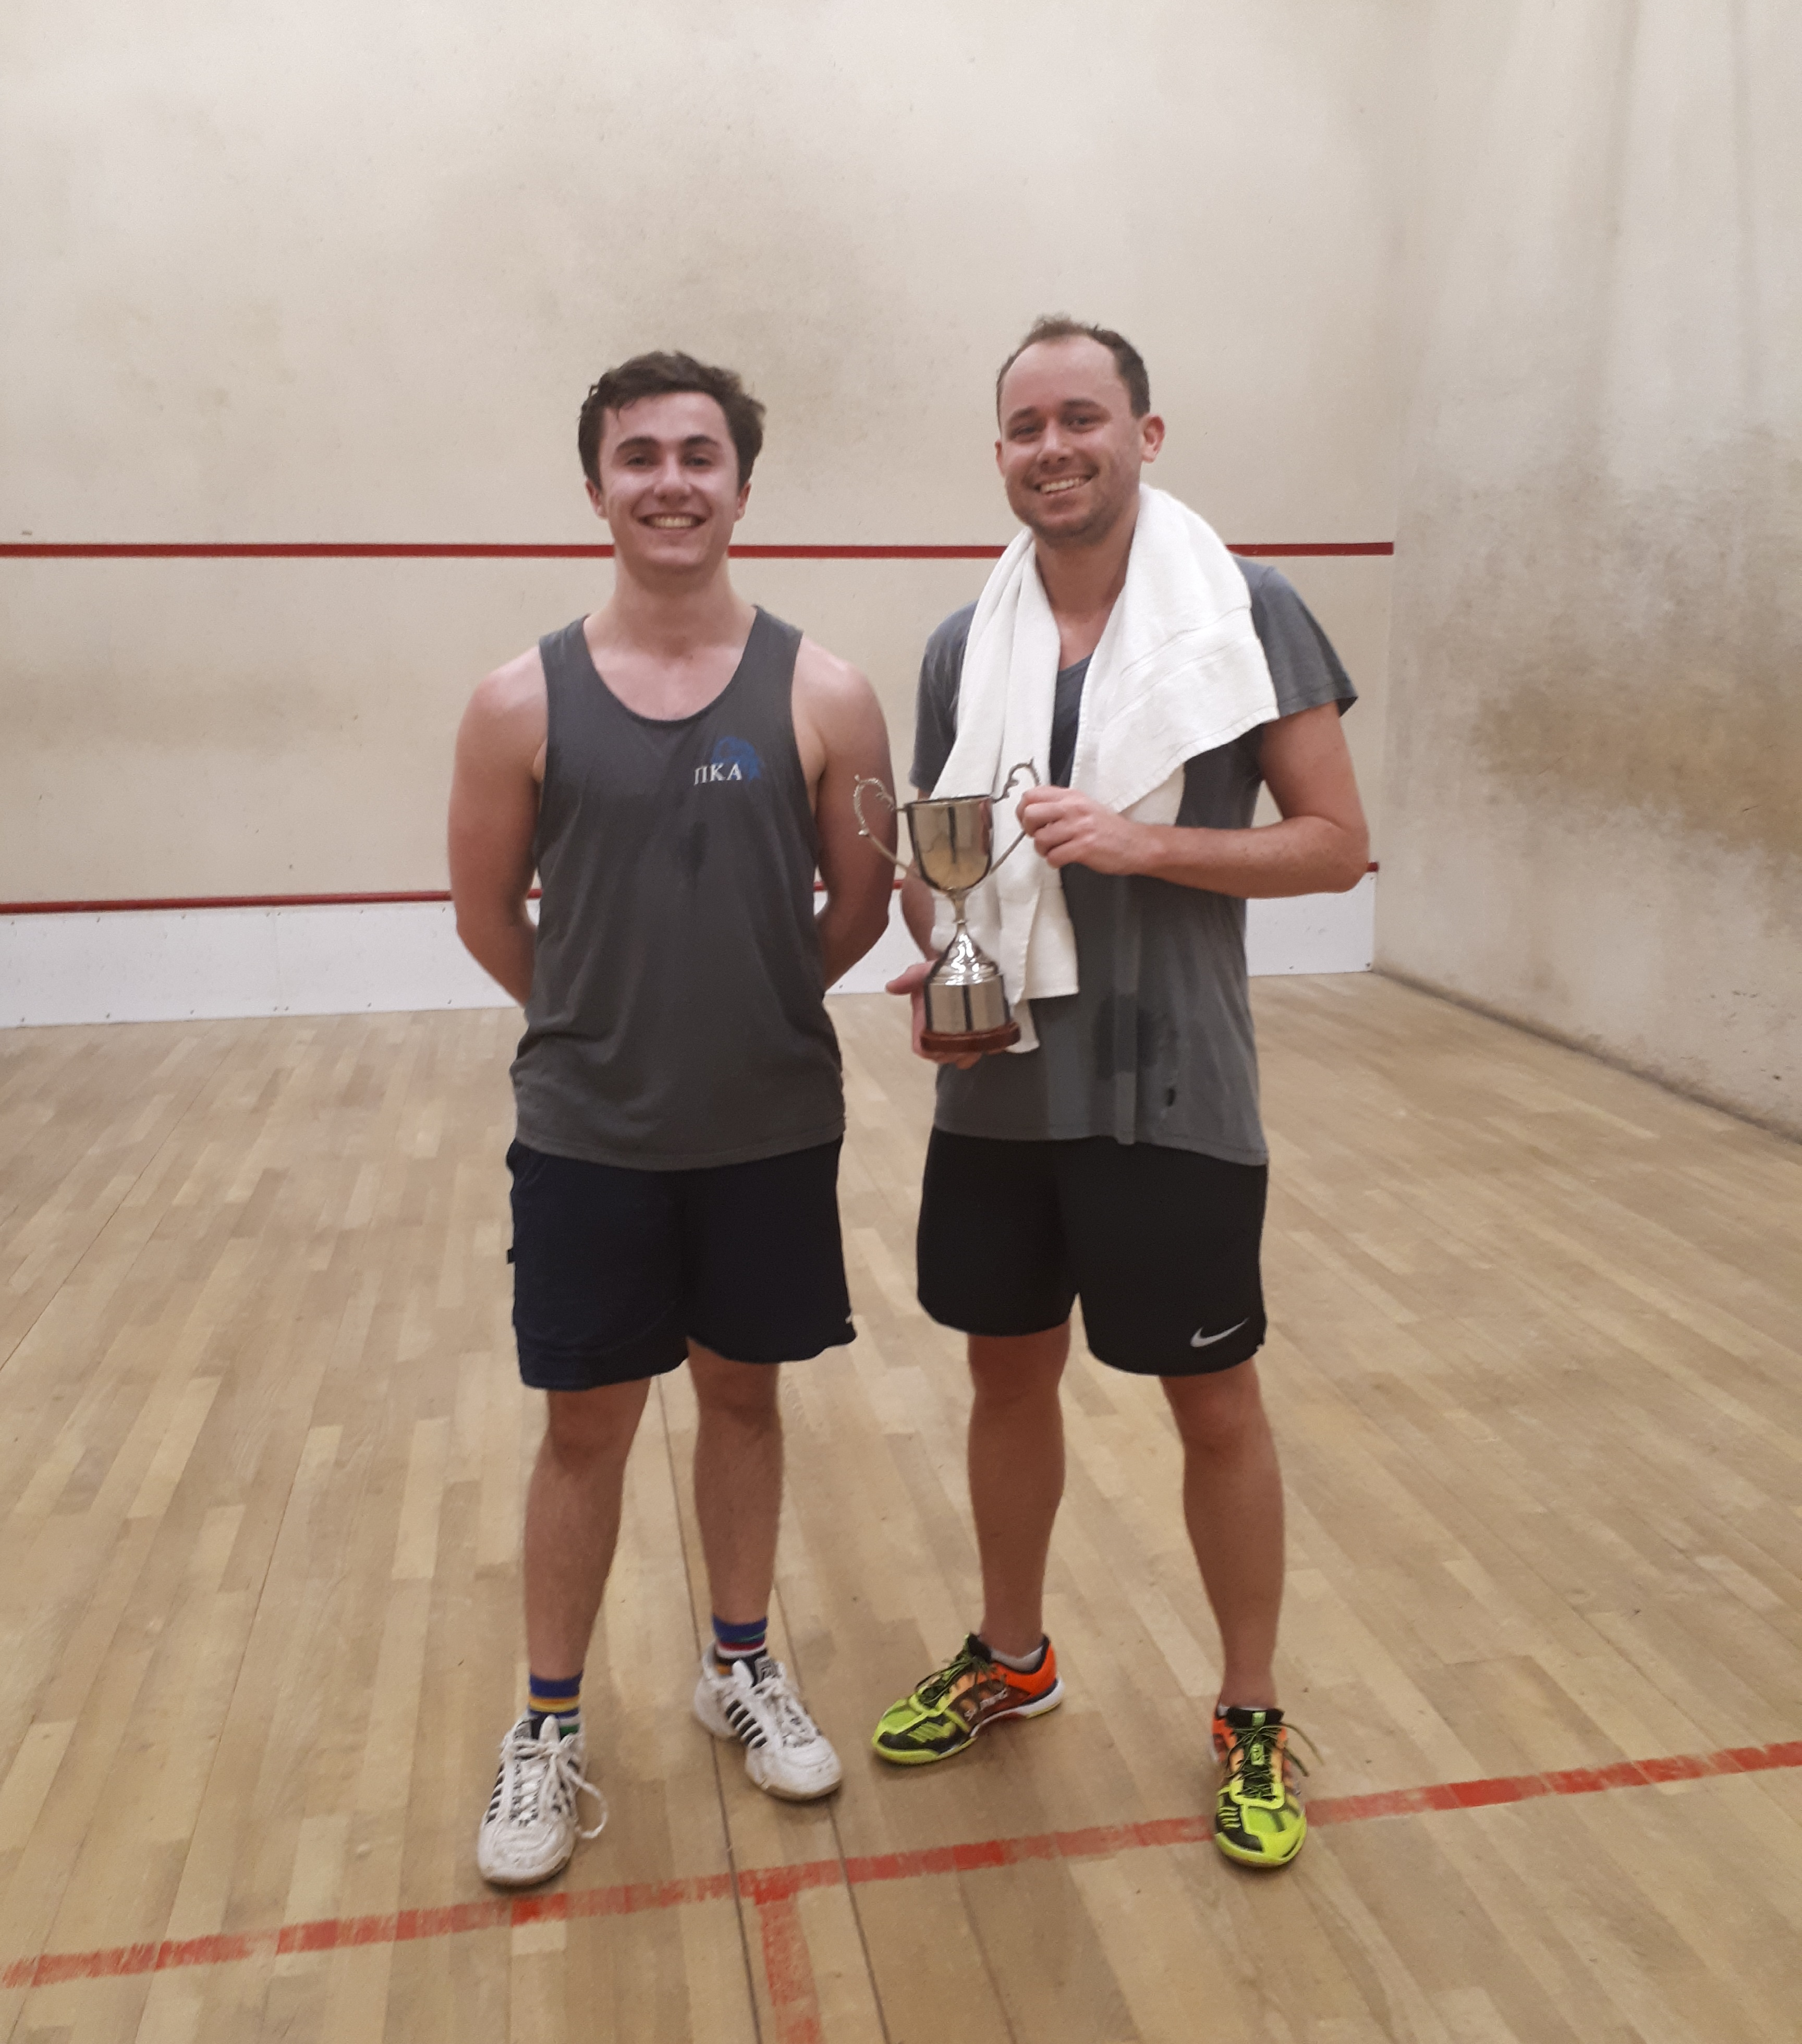 Squash court final players